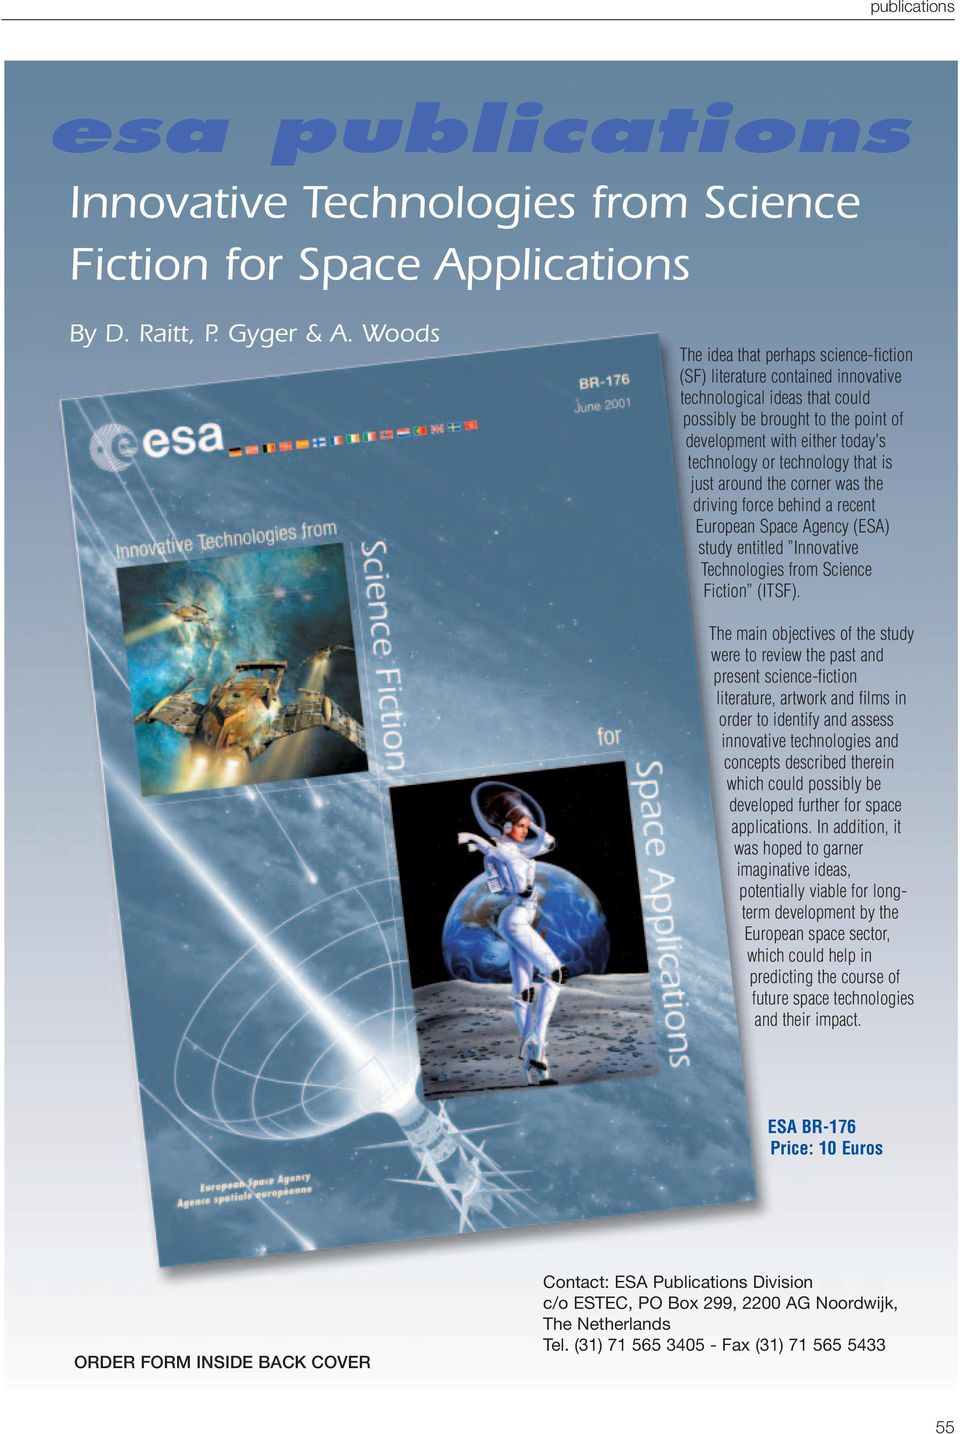 technology that is just around the corner was the driving force behind a recent European Space Agency (ESA) study entitled Innovative Technologies from Science Fiction (ITSF).